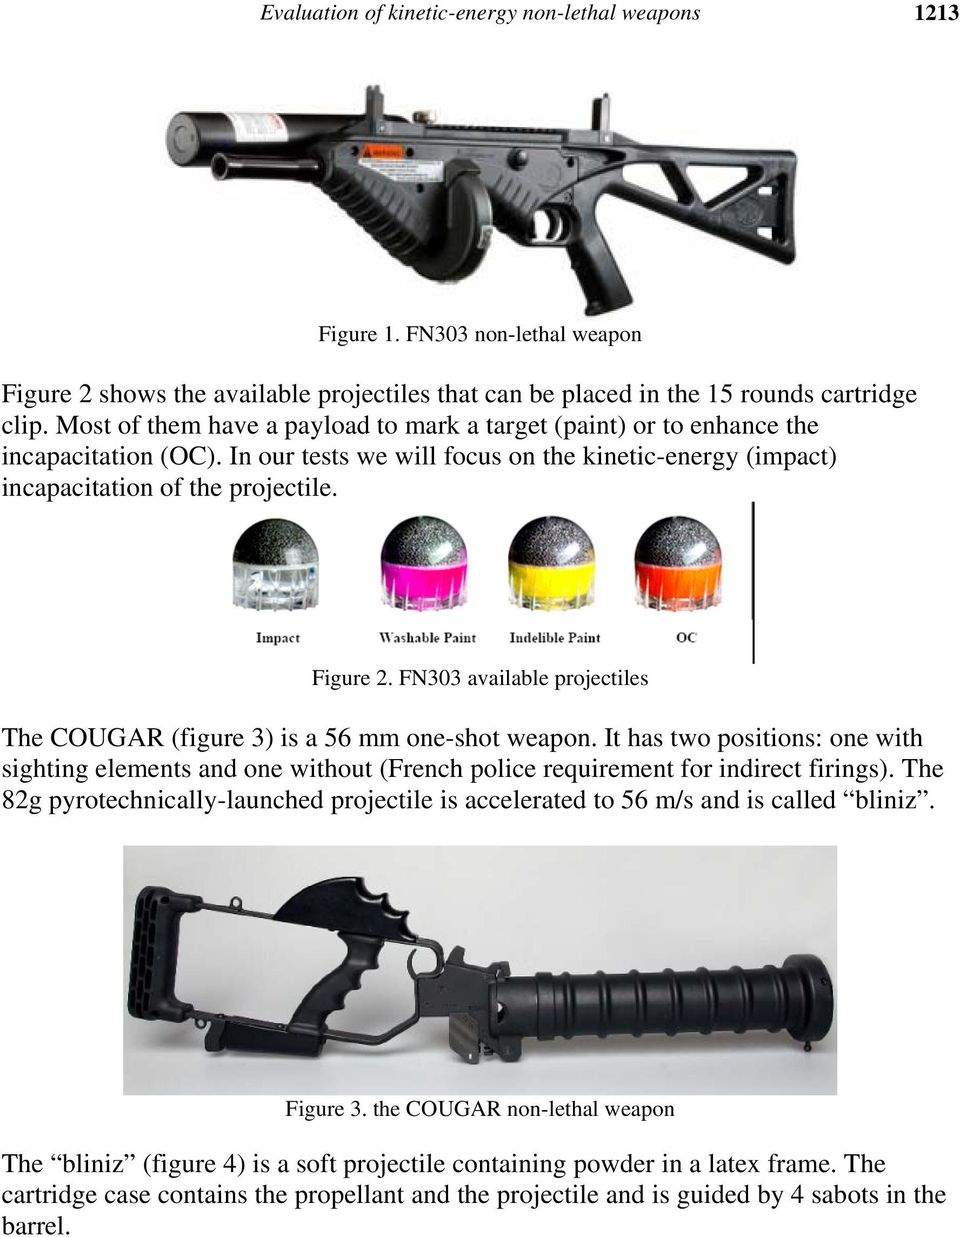 Evaluation Of Kinetic Energy Non Lethal Weapons Pdf Xrep A Combination Taser And Shotgun Fn303 Available Projectiles The Cougar Figure 3 Is 56 Mm One Shot